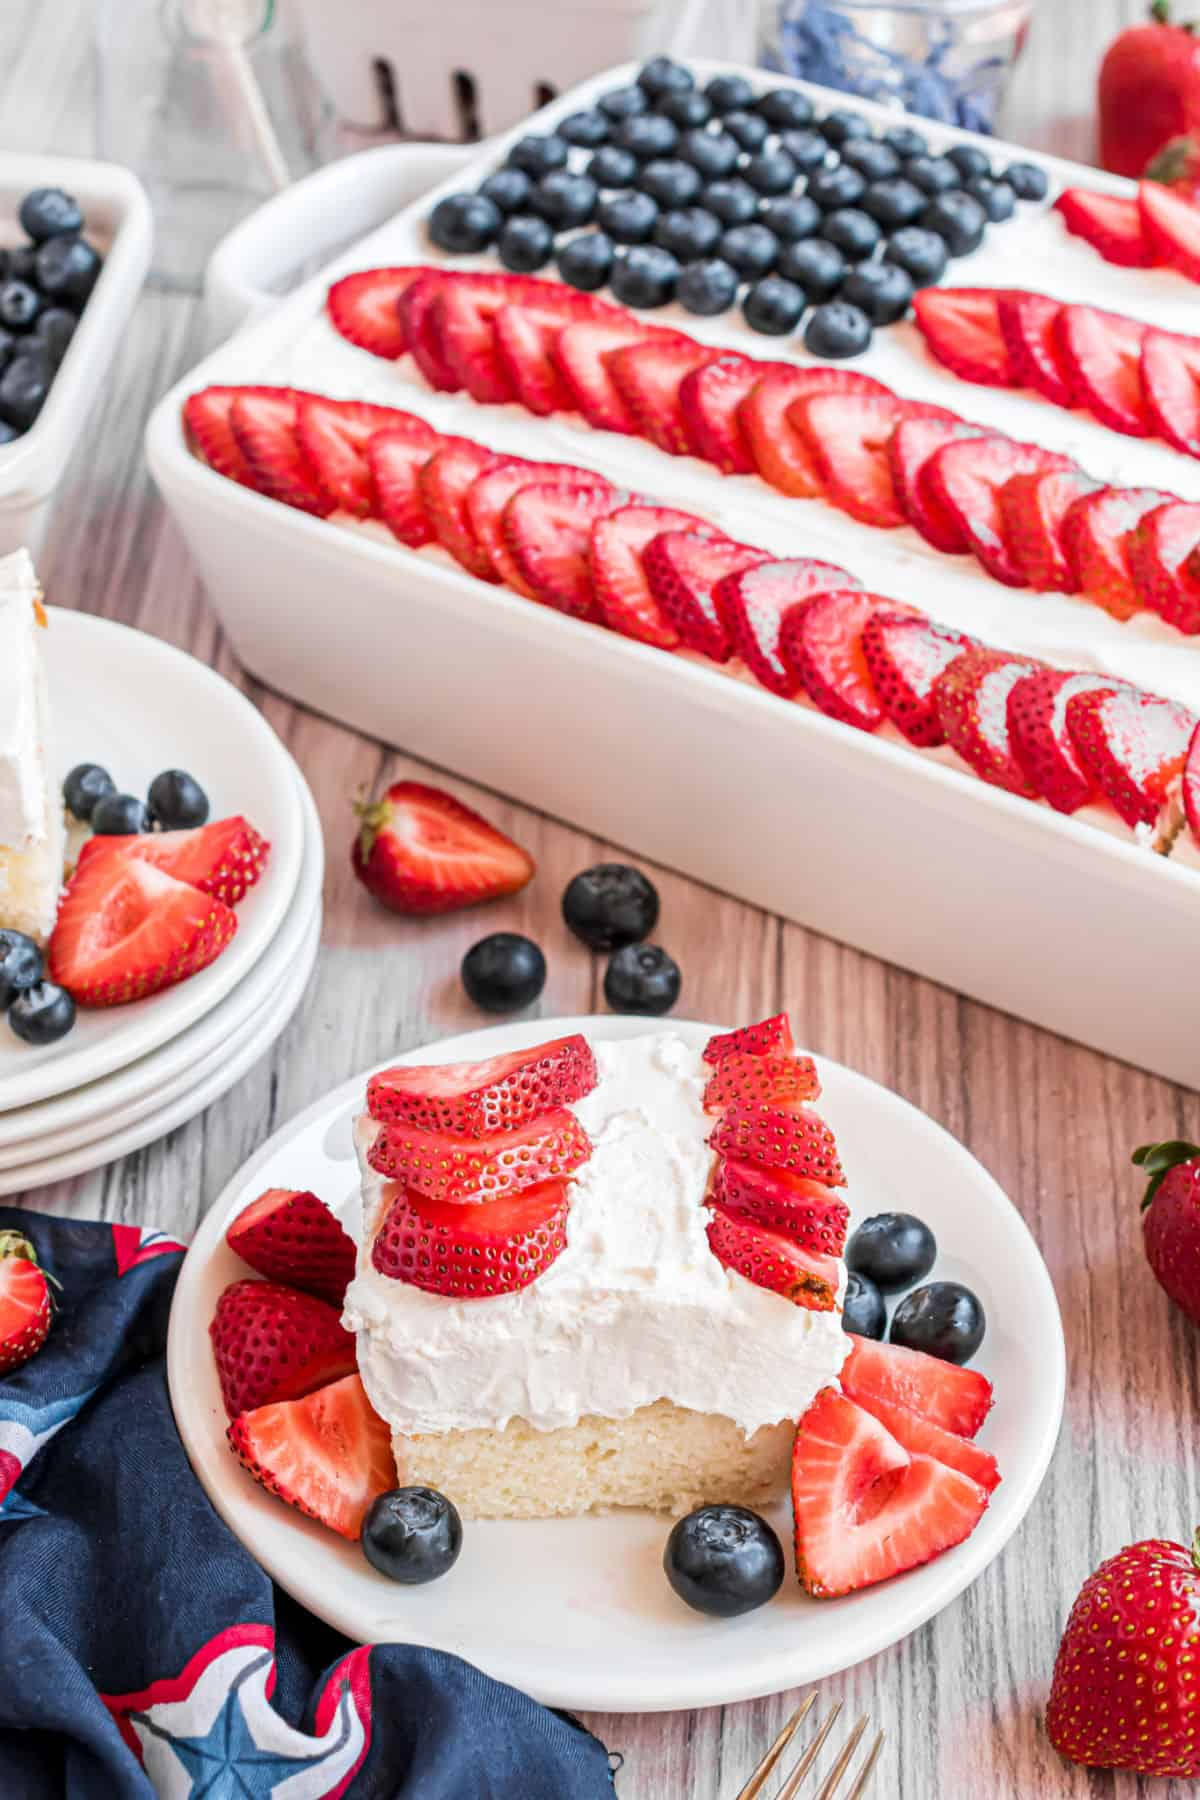 Slice of white cake with fresh berries to mimic an American flag.